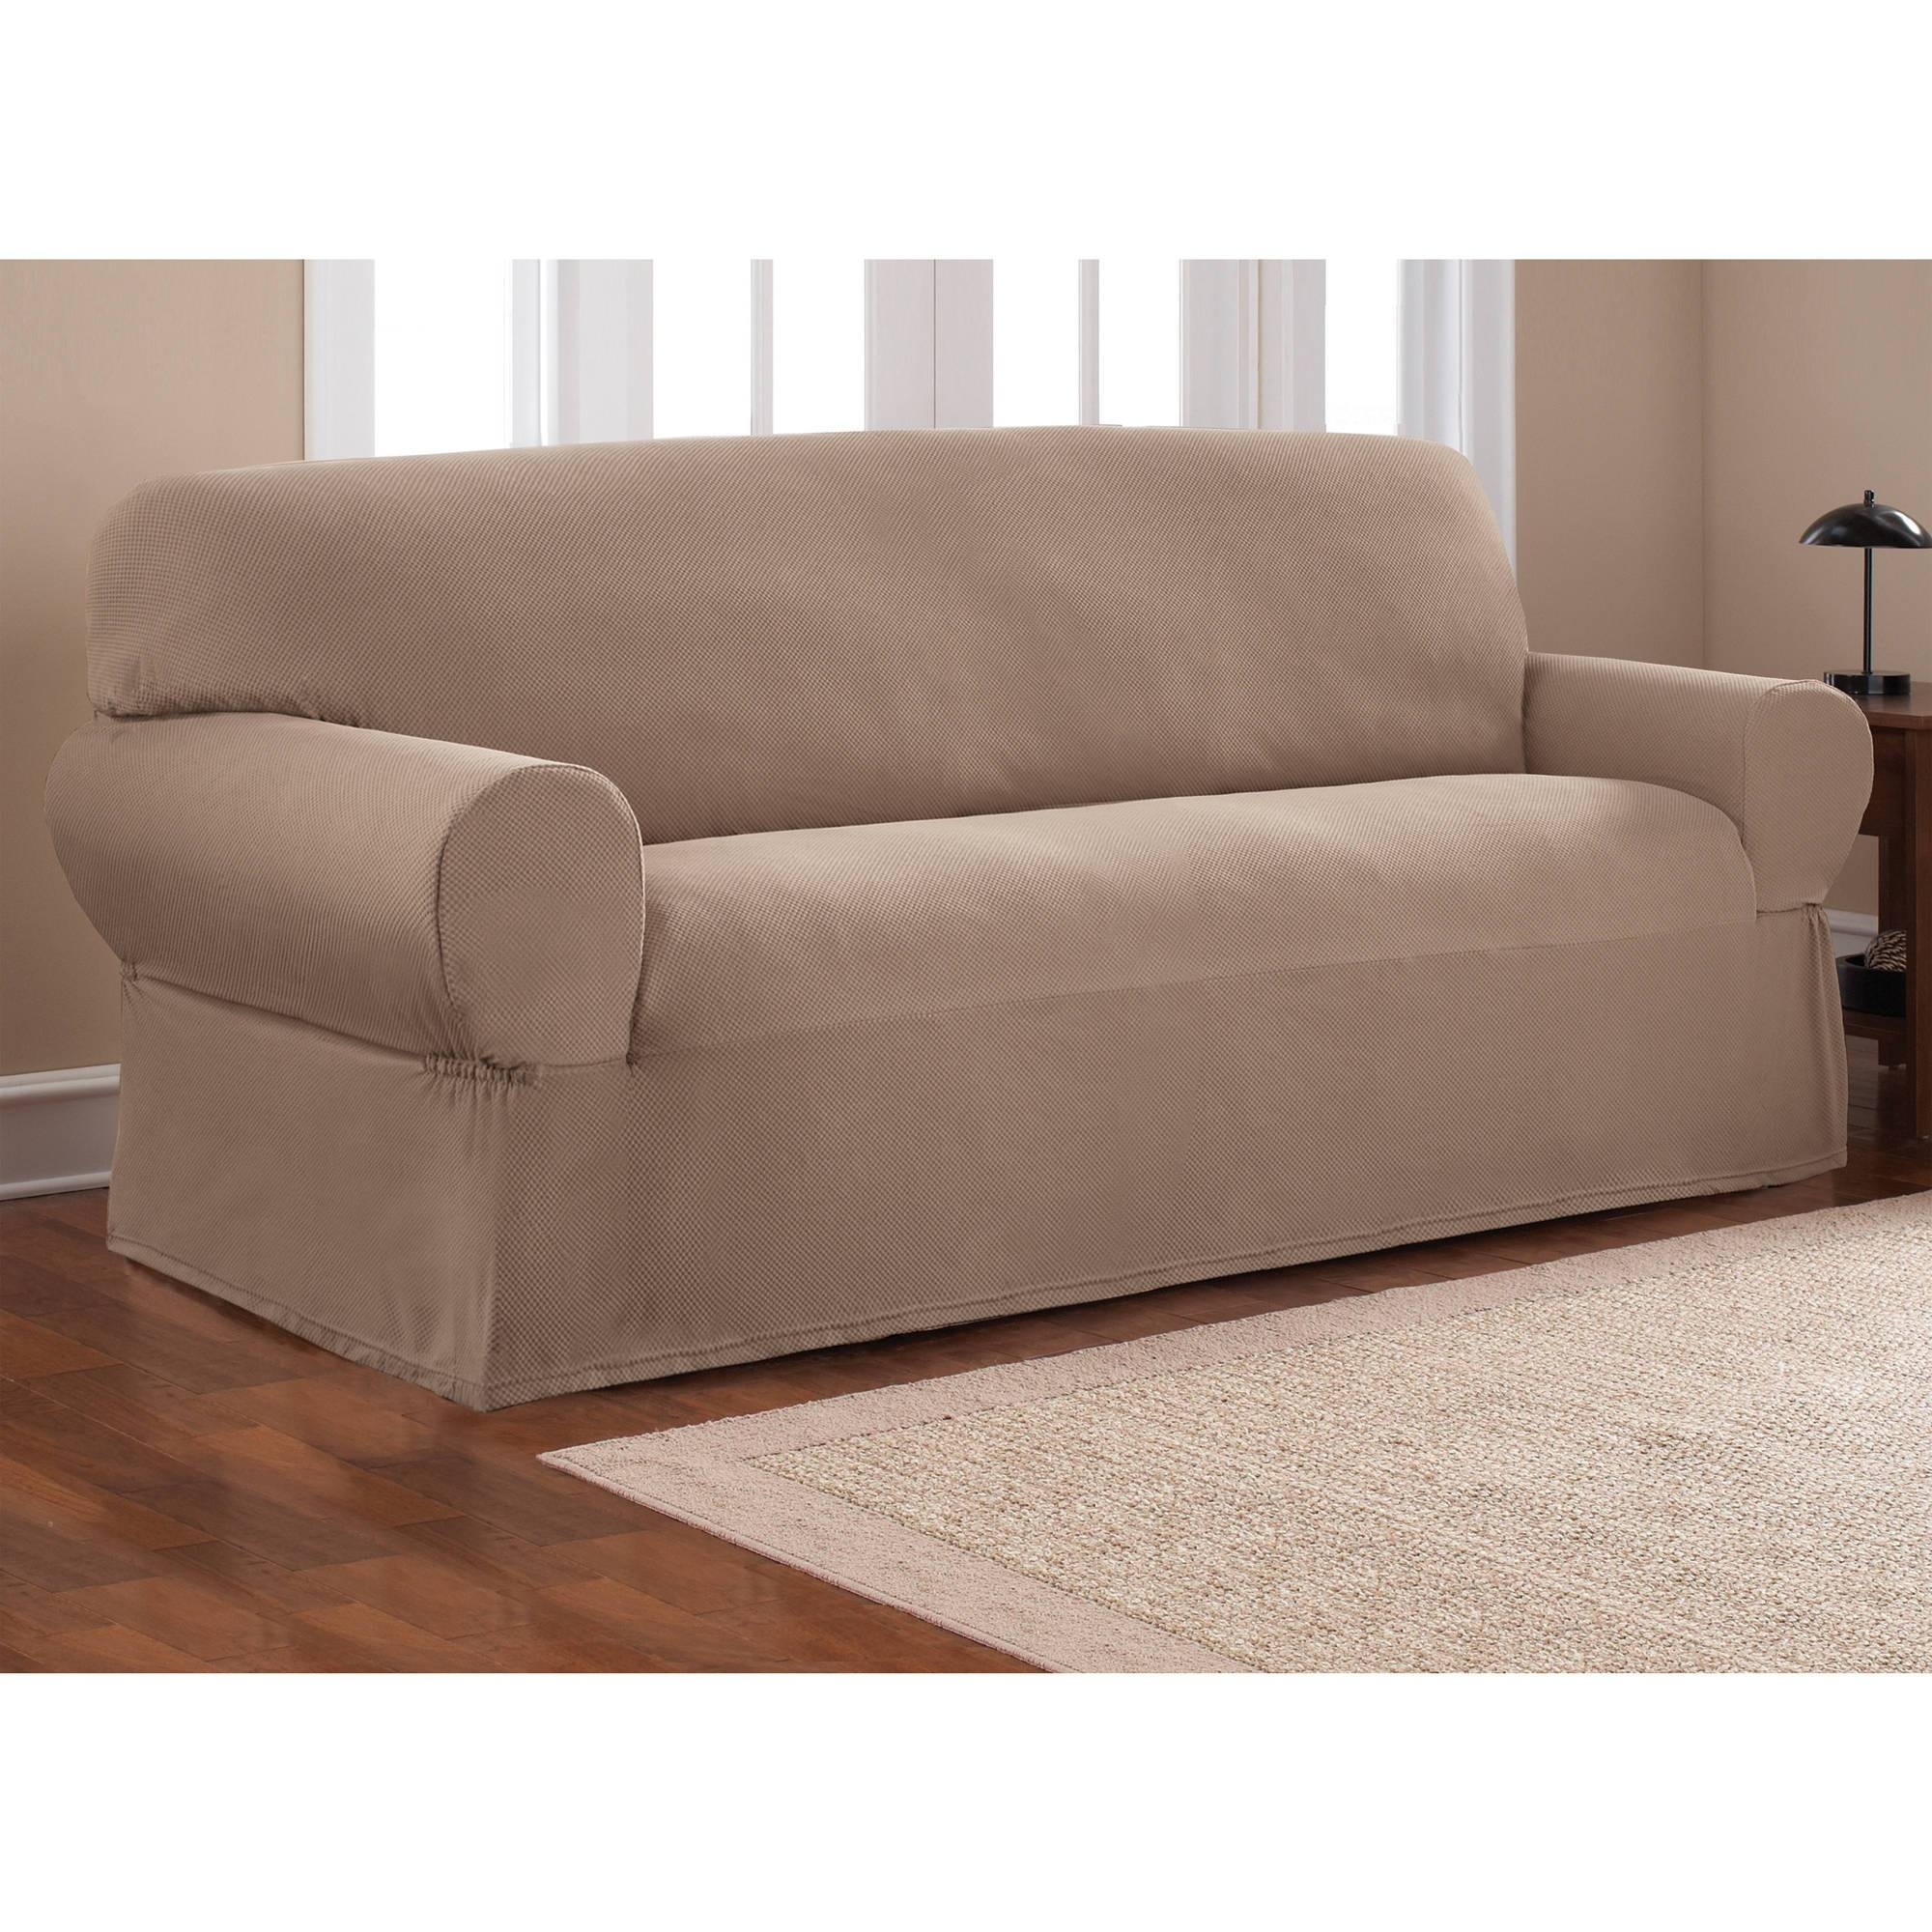 Mainstays 1-Piece Stretch Fabric Sofa Slipcover - Walmart throughout Loveseat Slipcovers 3 Pieces (Image 8 of 15)